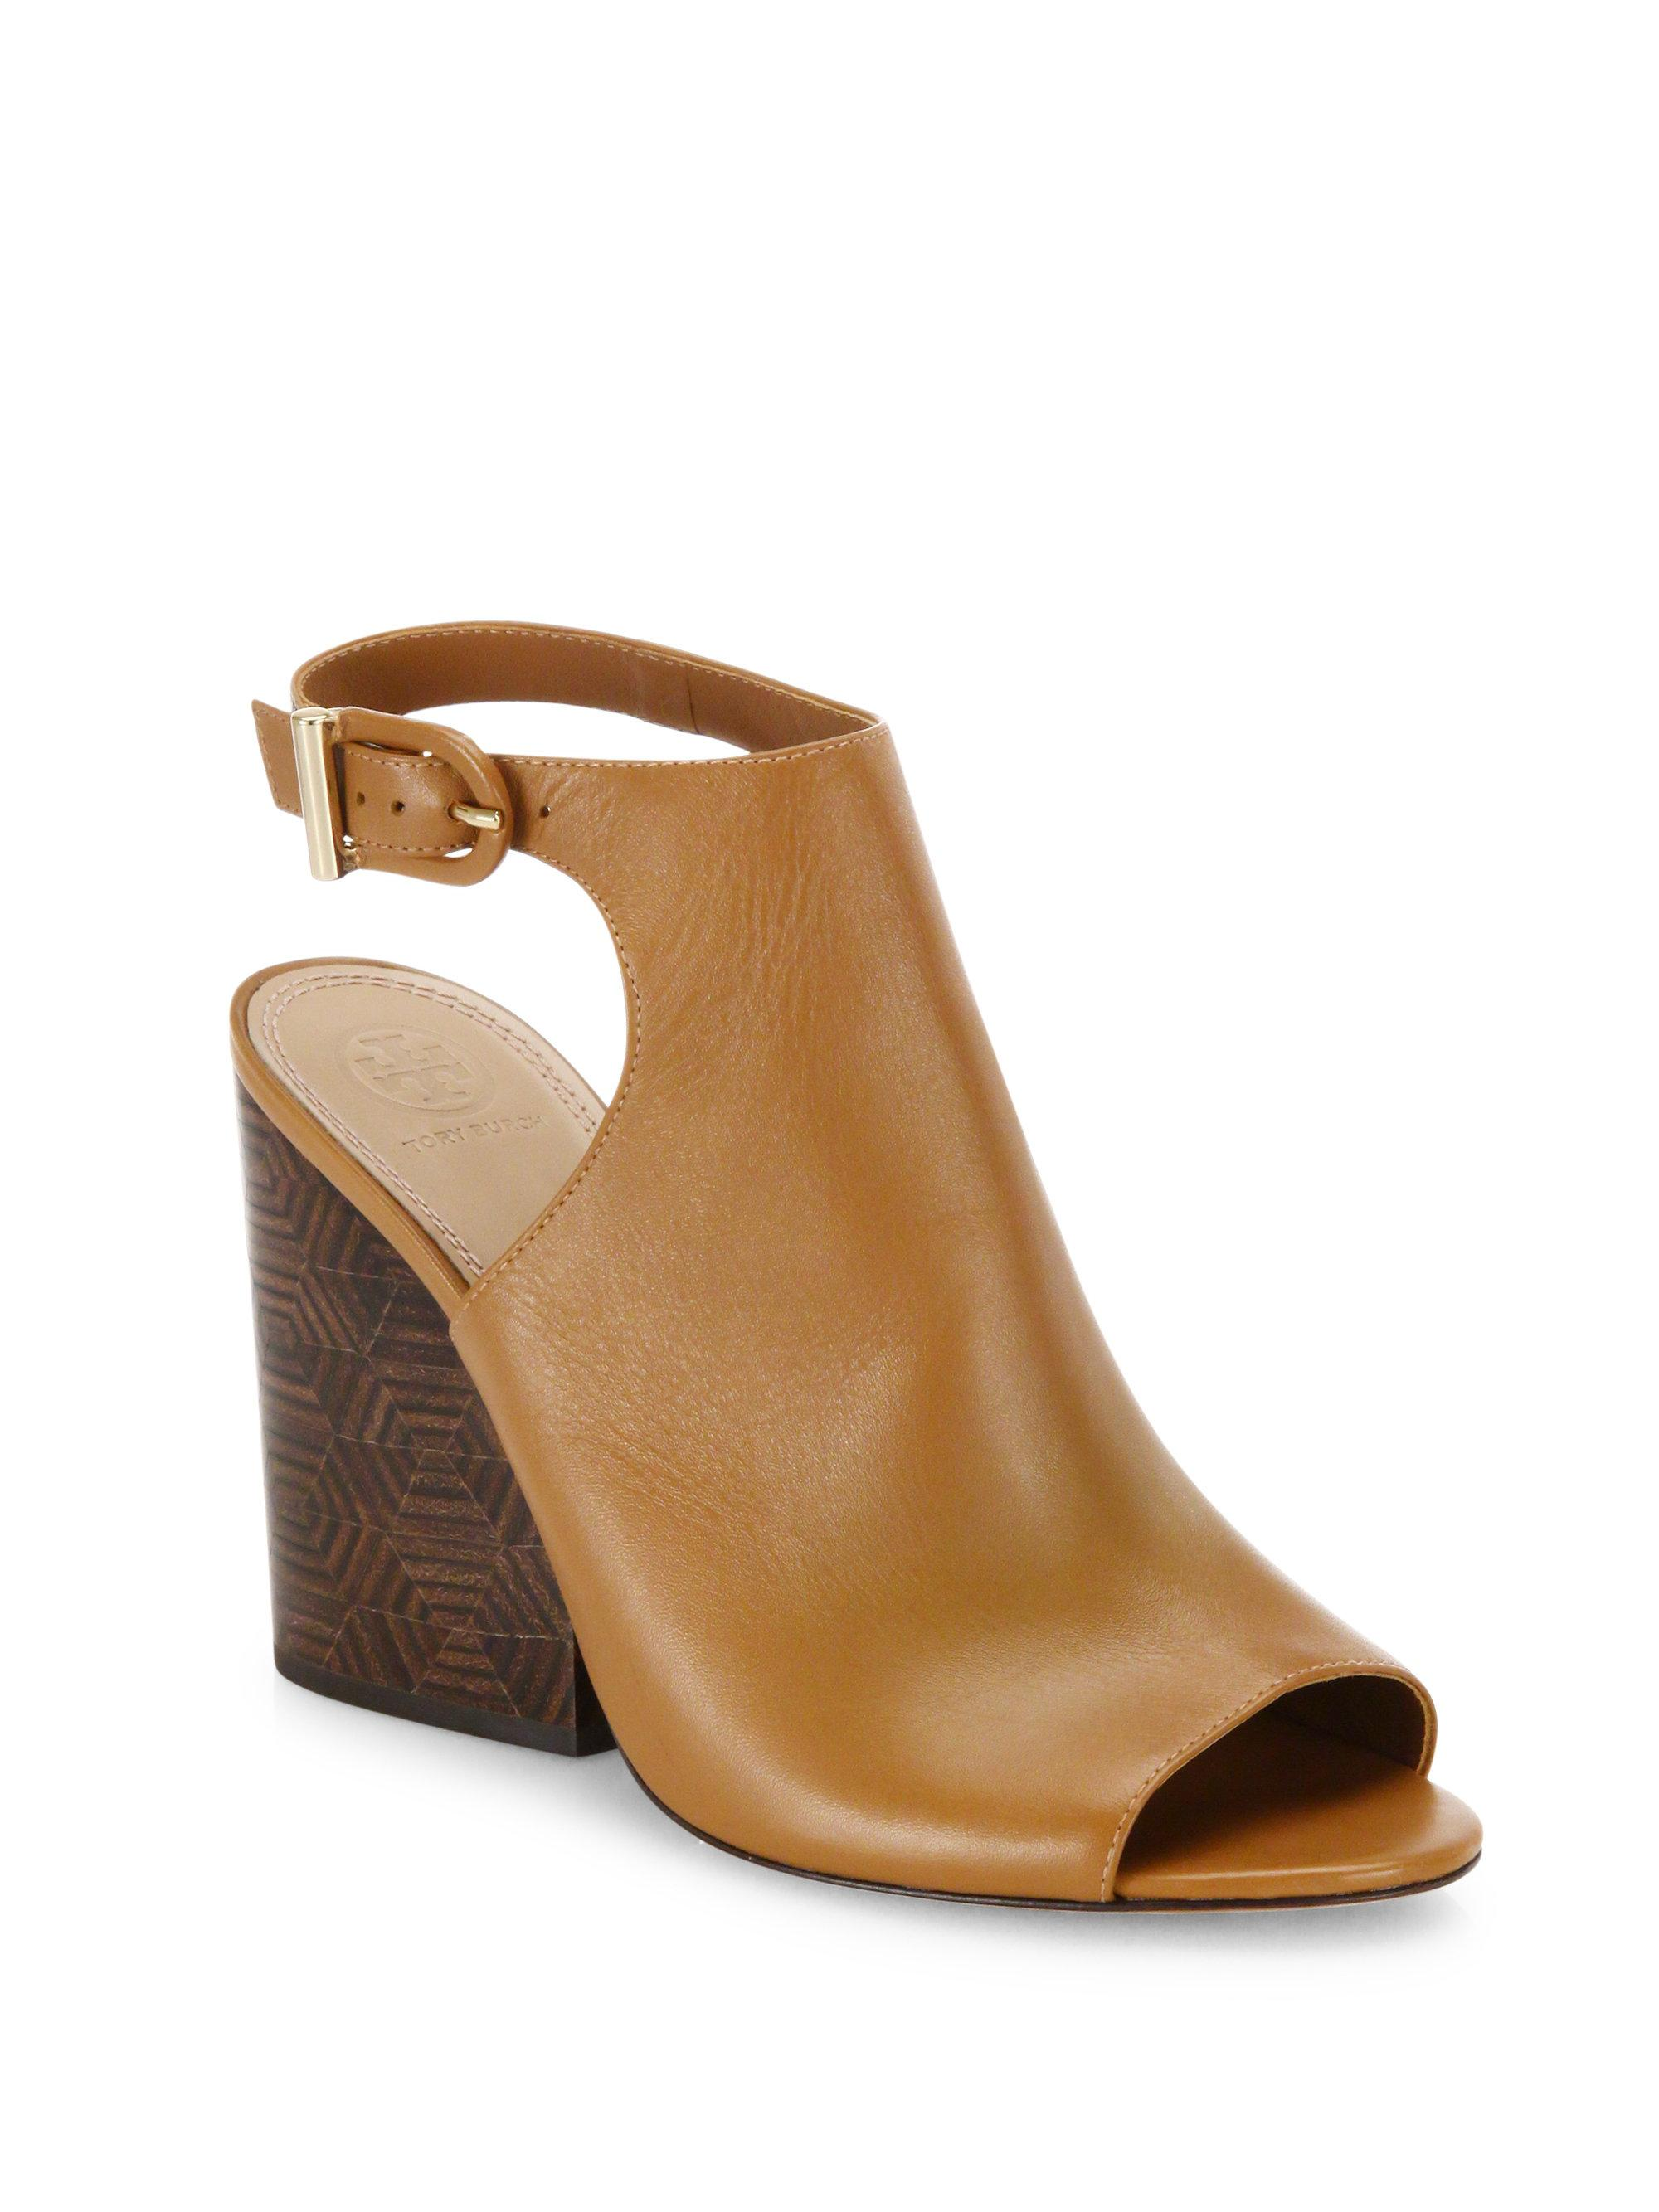 Tory Burch Grove Open Toe Leather Wedge Booties In Brown